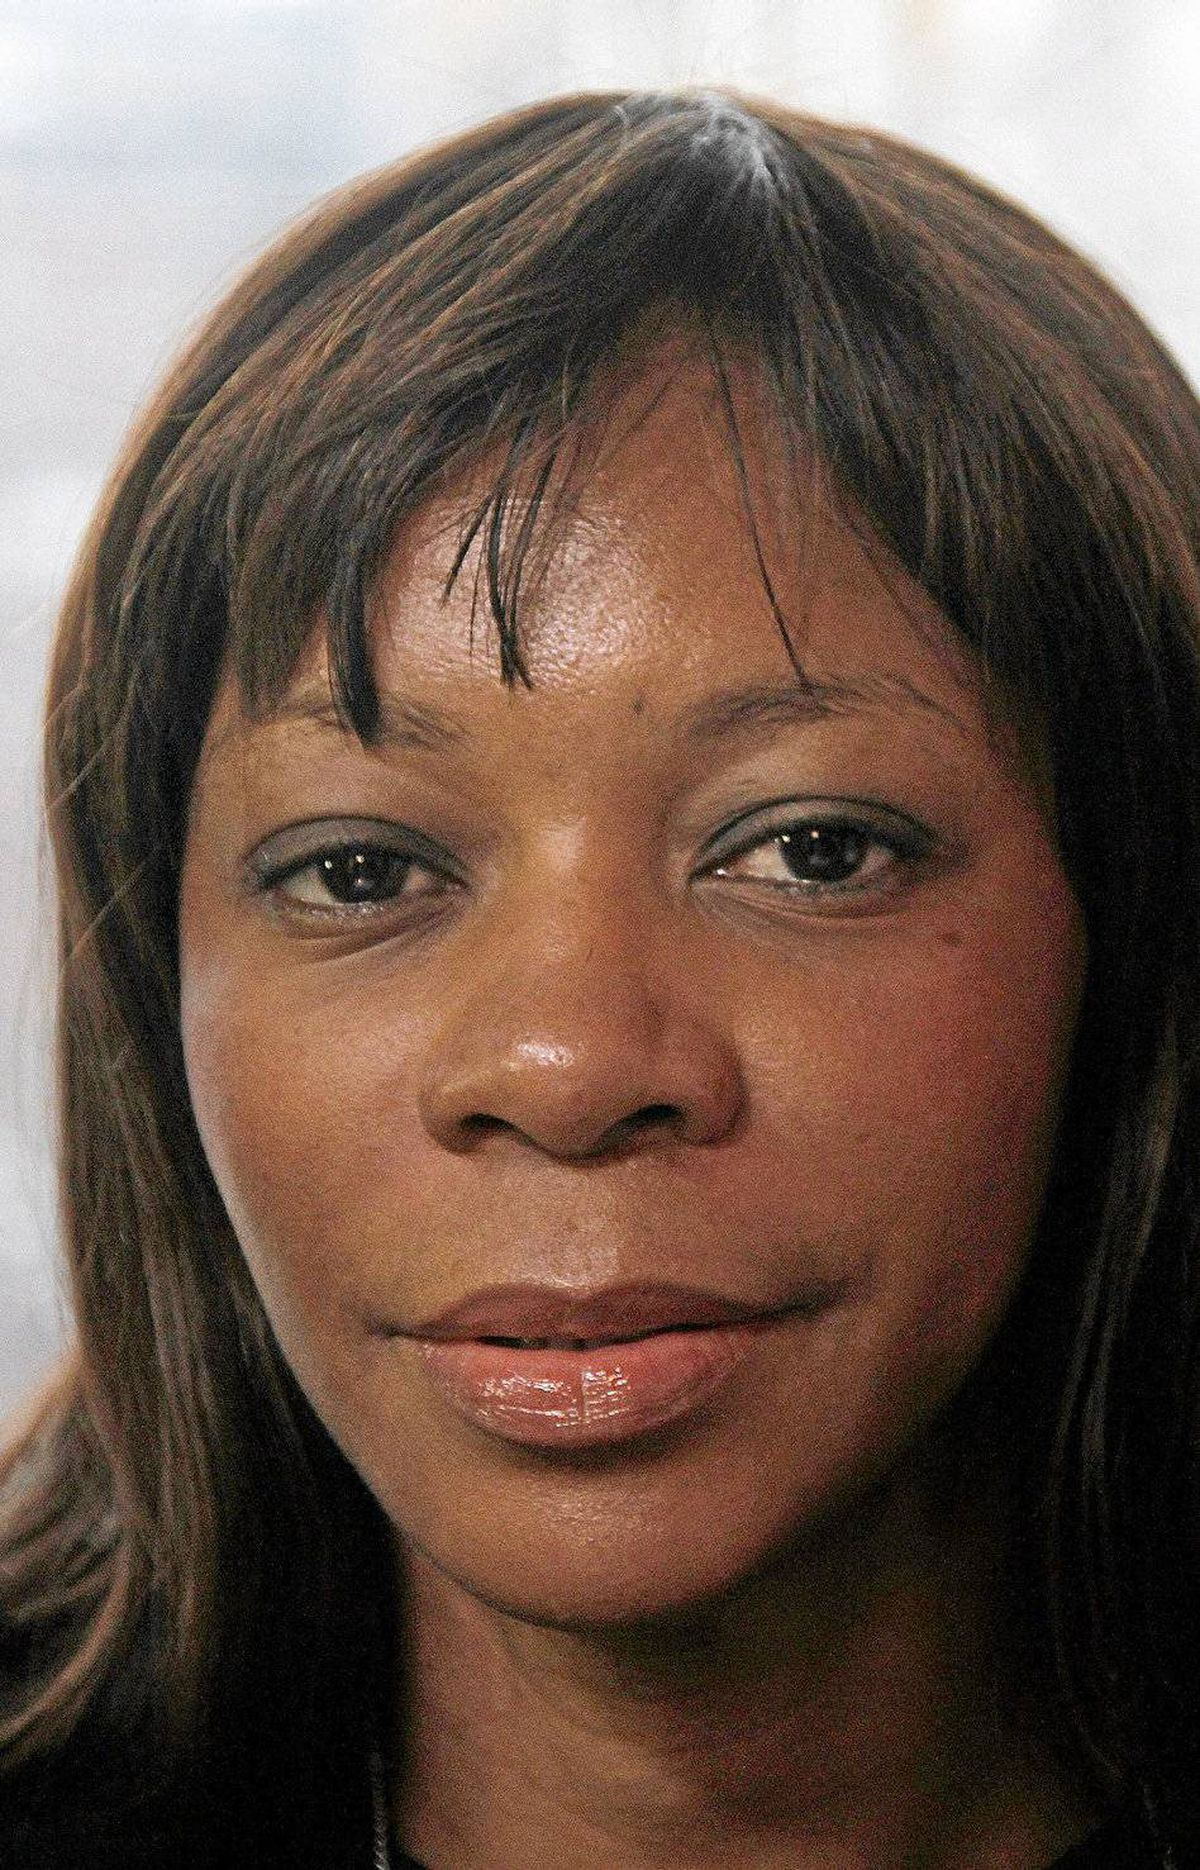 Dambisa Moyo Zambian-born economist, World Bank consultant and author of the New York Times bestseller Dead Aid: Why Aid is Not Working and How there is a Better Way for Africa. In 2009, Time named her one of the world?s 100 most influential people.